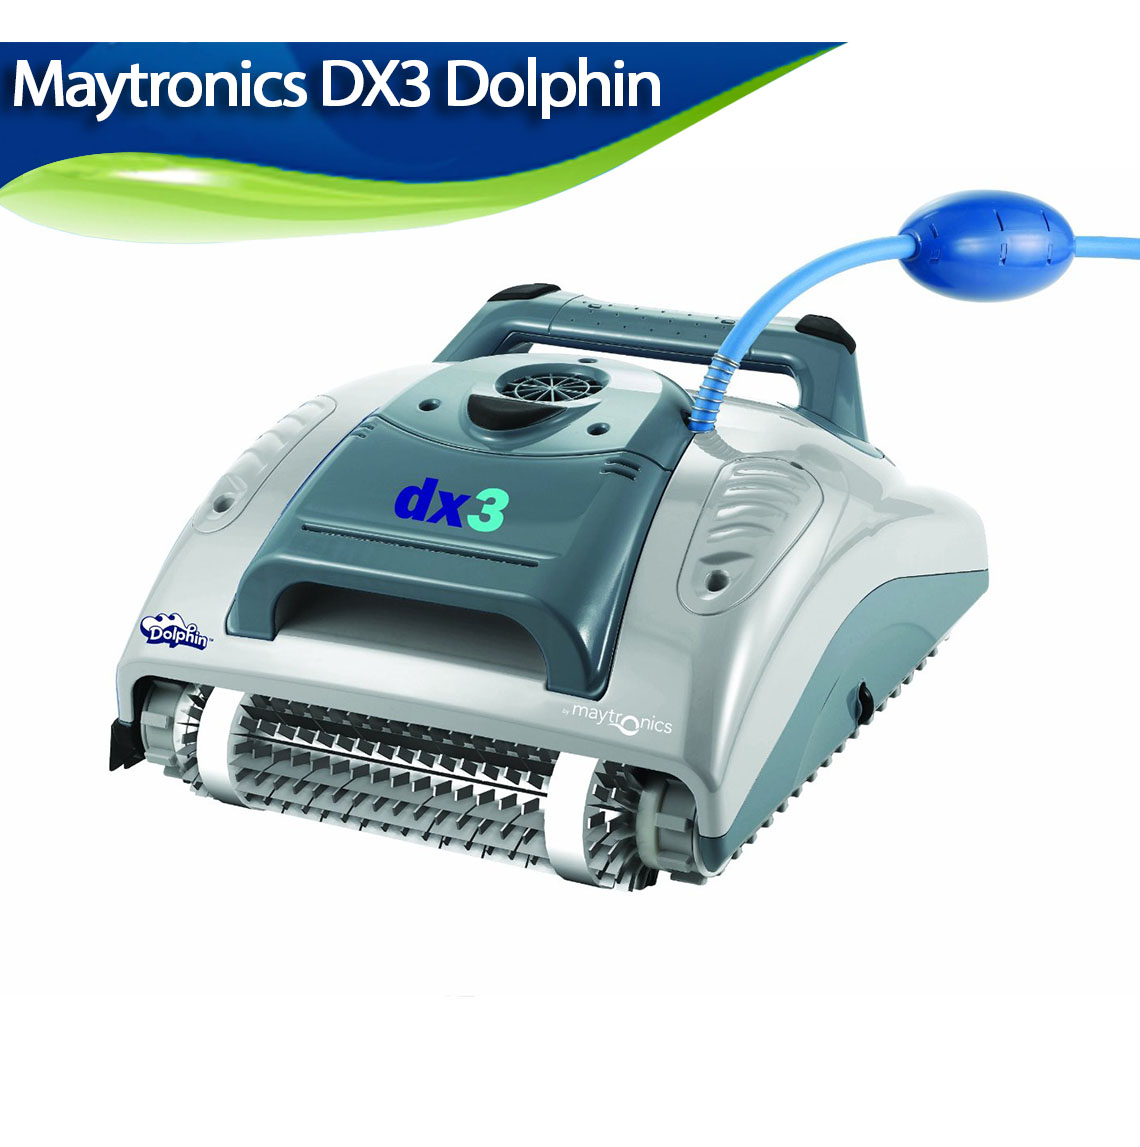 Maytronics DX3 Dolphin REVIEW